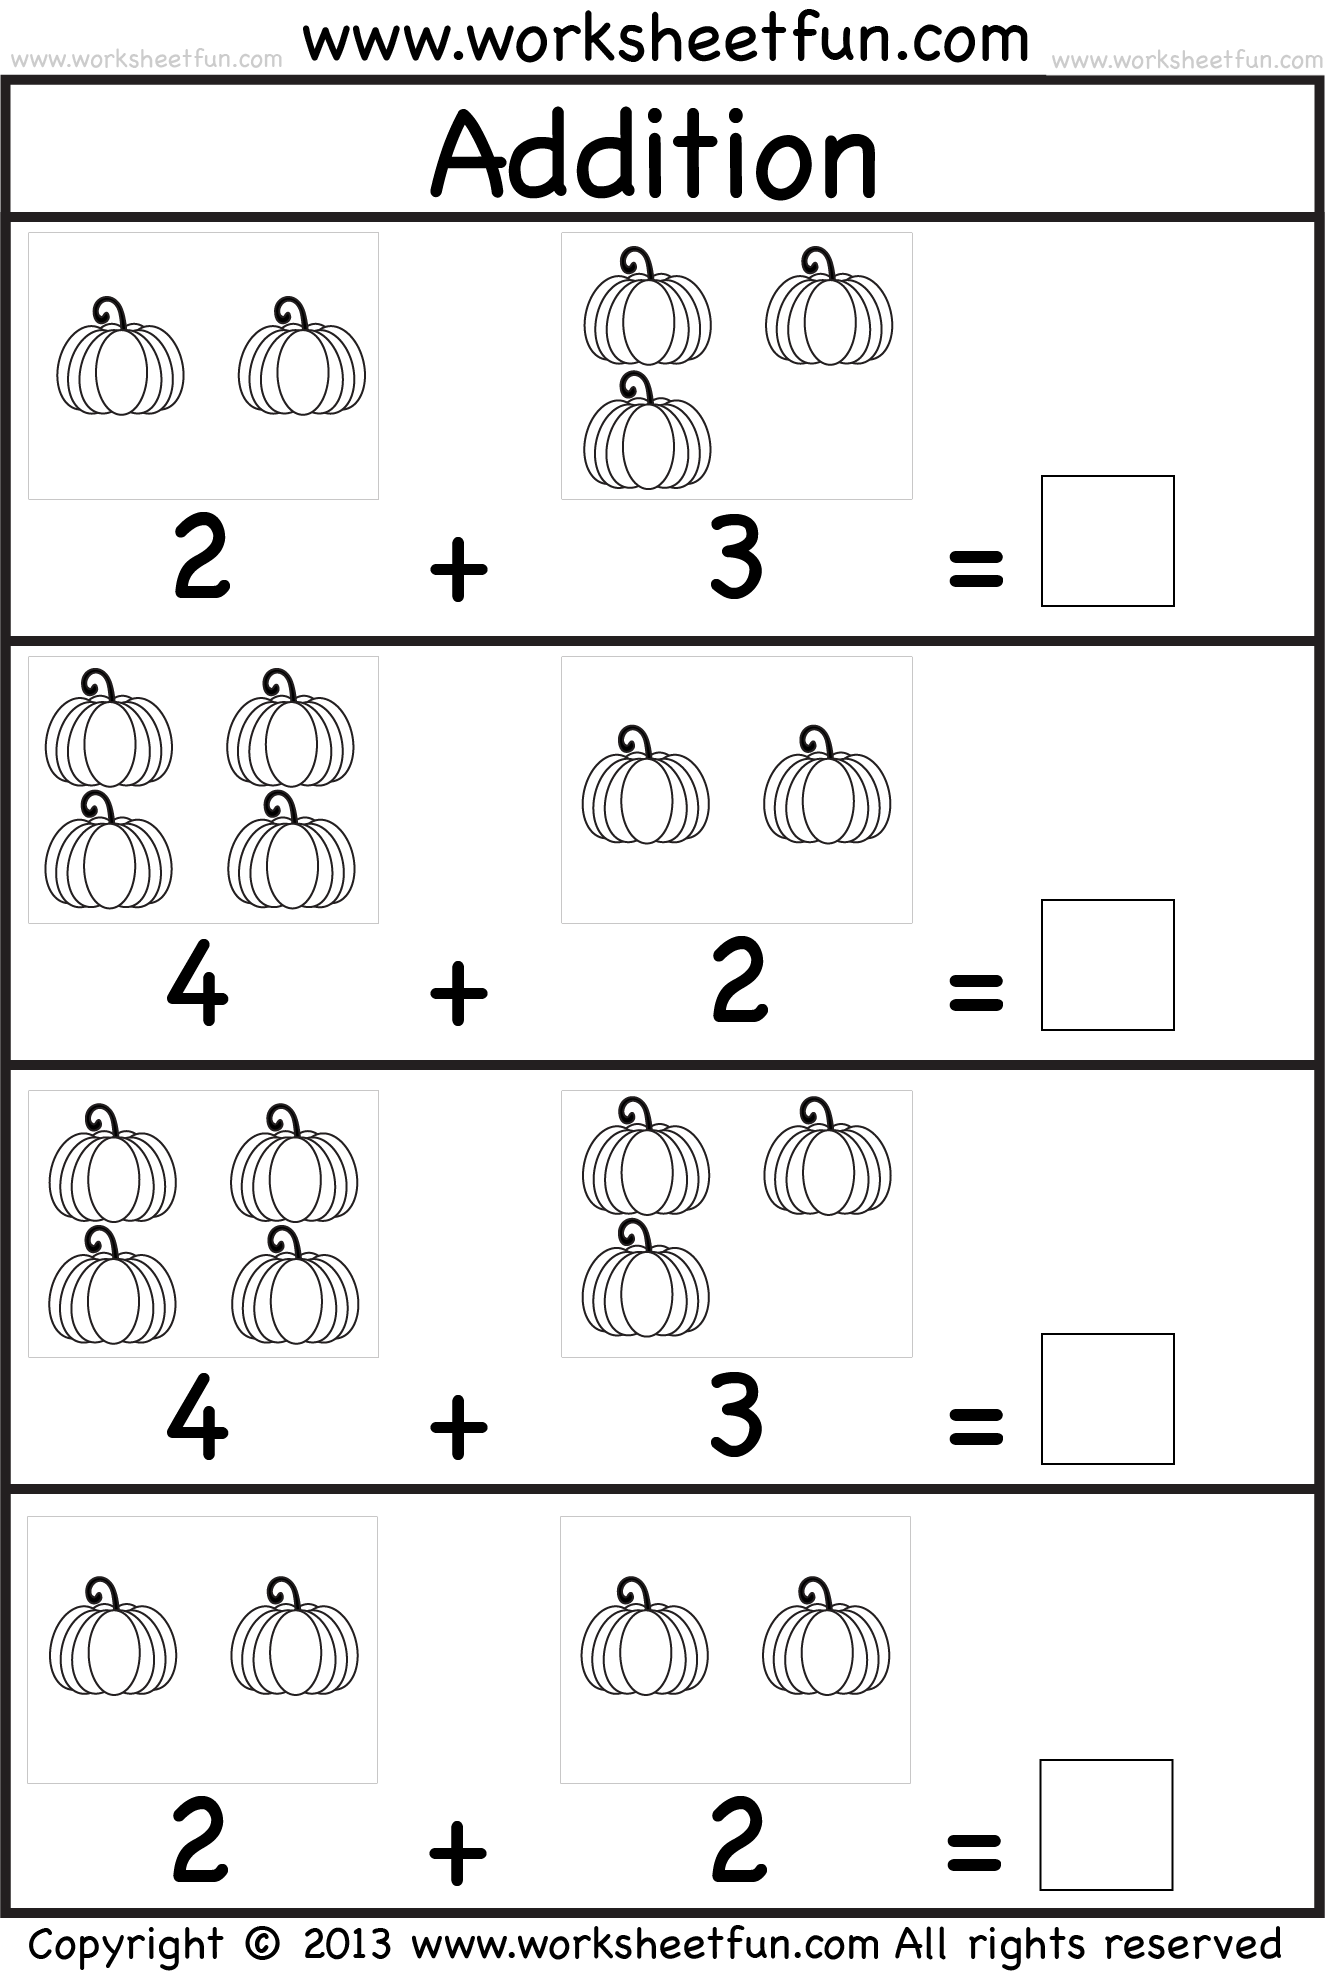 Free Worksheet Free Printable Pre Kindergarten Worksheets free fall preschool worksheet for november acorn number order 10 best images about kindergarten on pinterest worksheets math and coloring